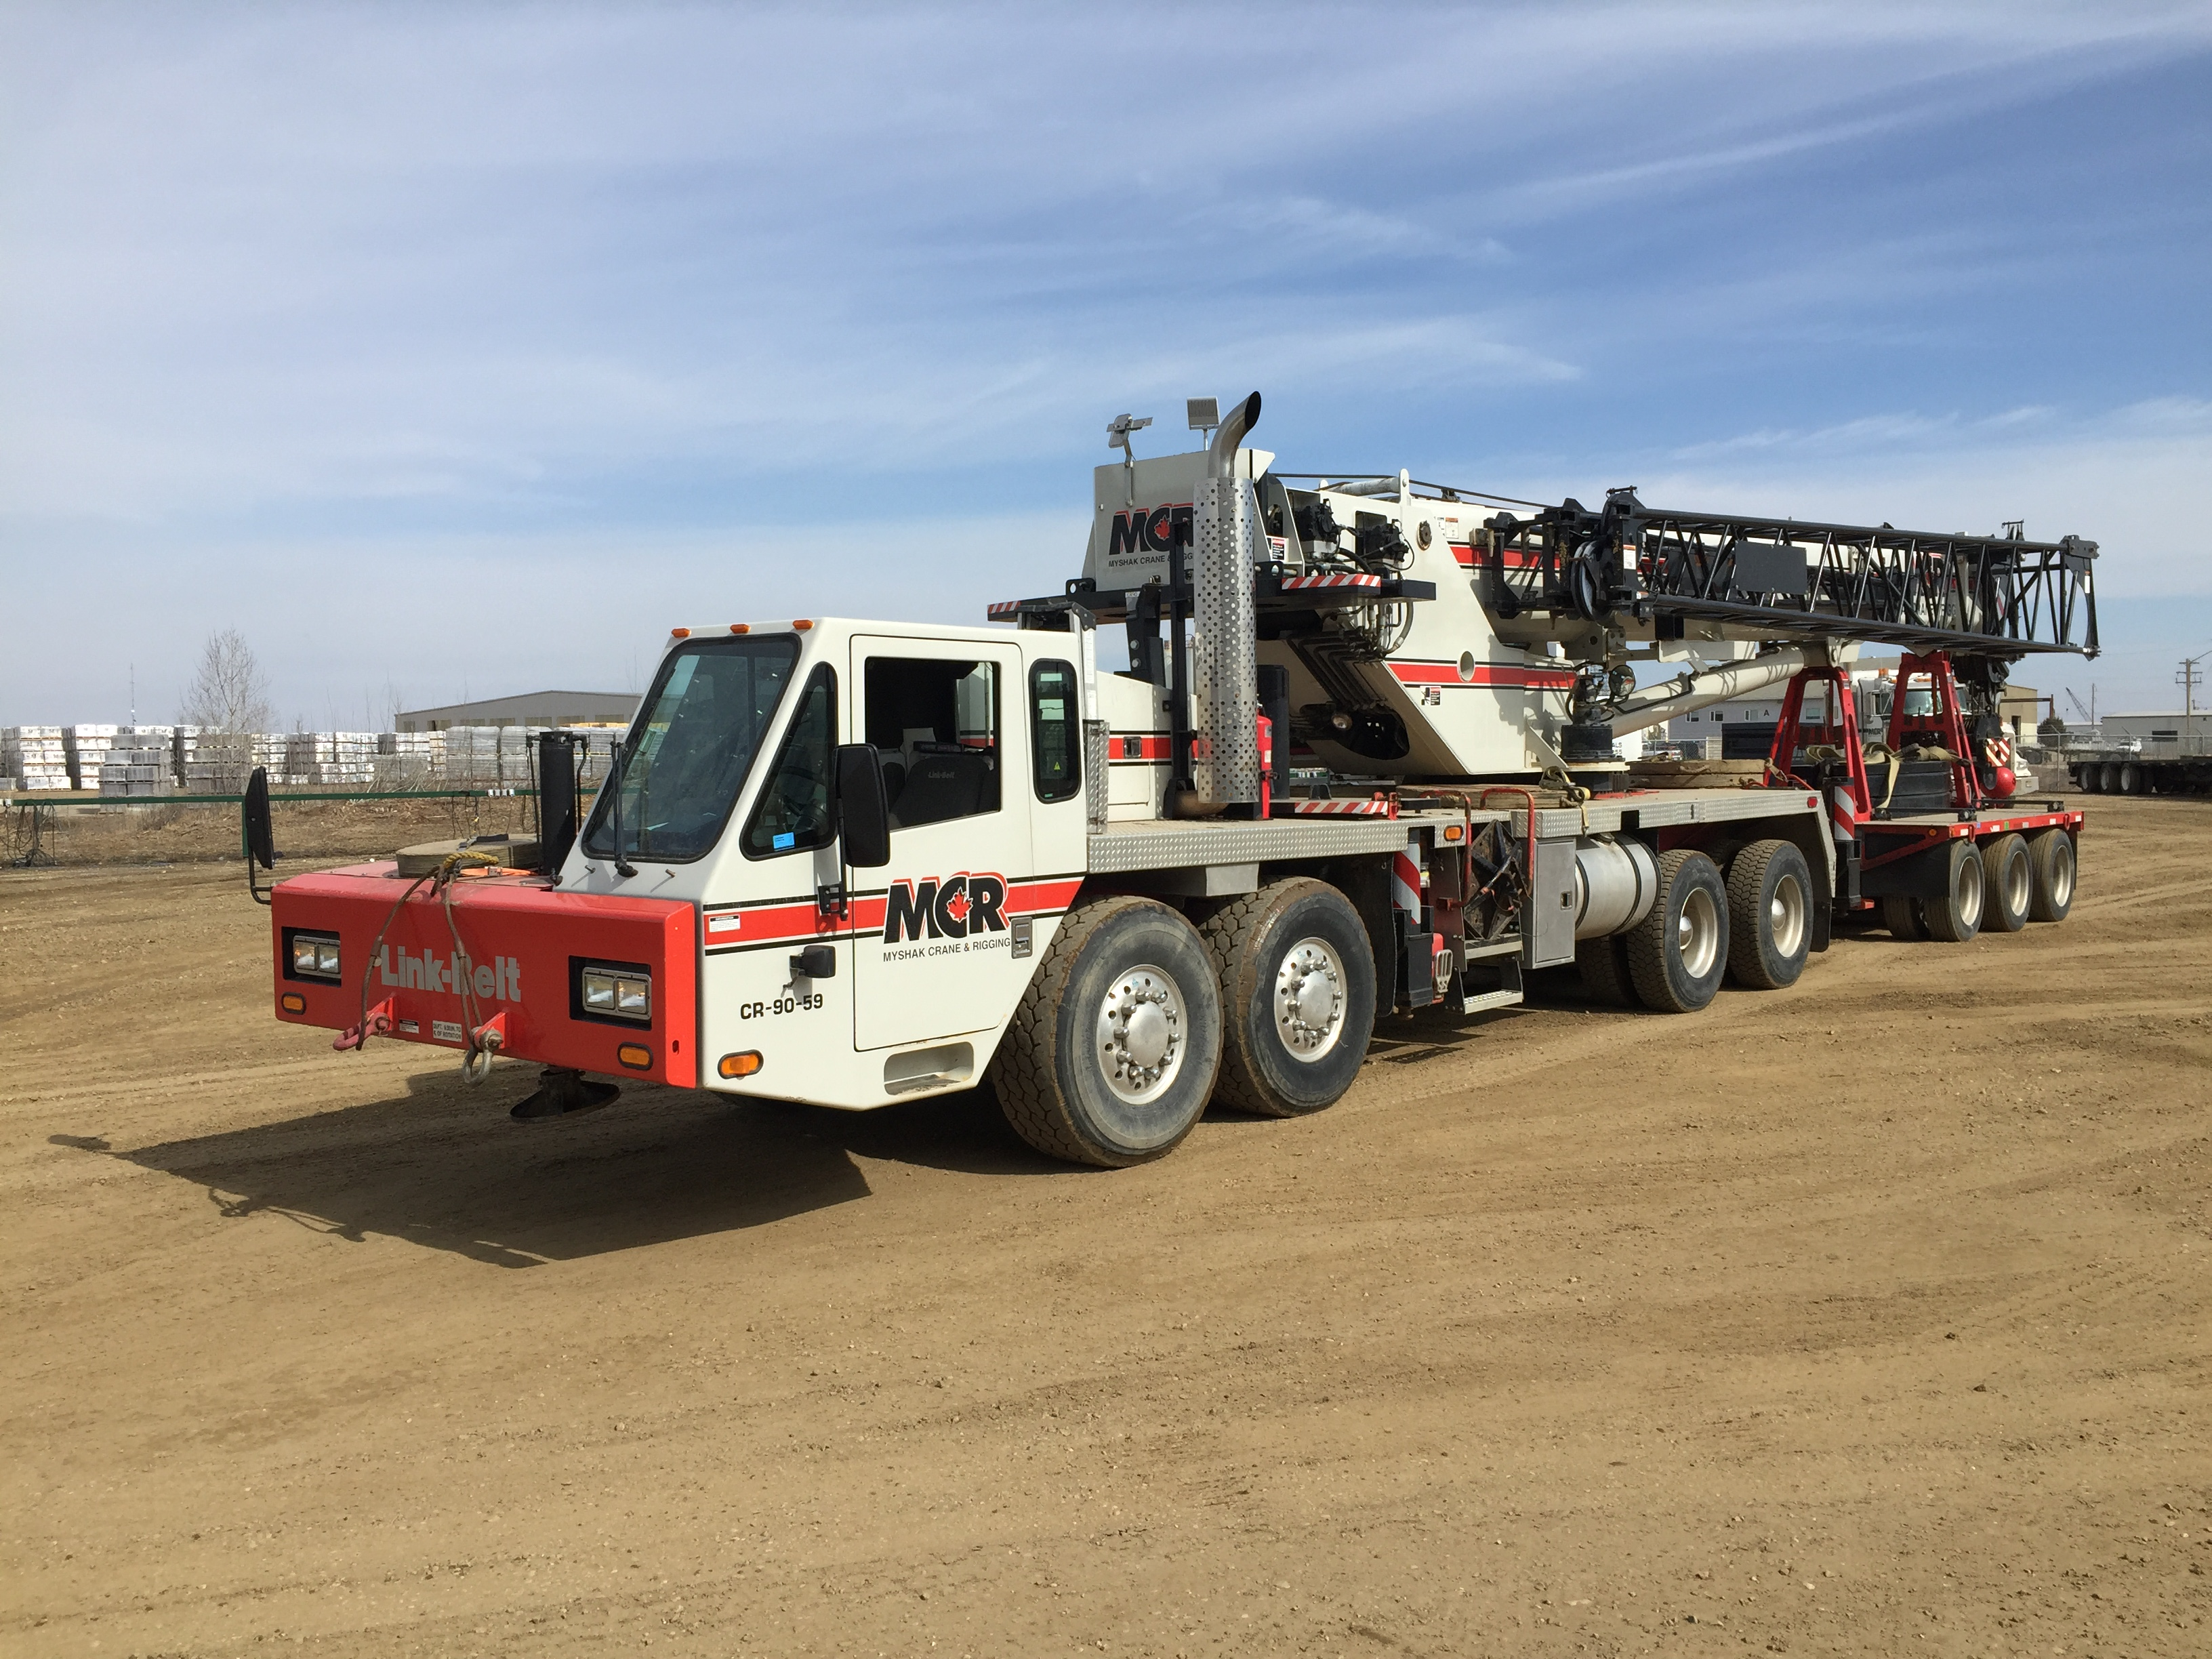 Myshak Crane & Rigging Ltd Now Proudly Offers Crane and Rigging Rentals in Fort St John Area